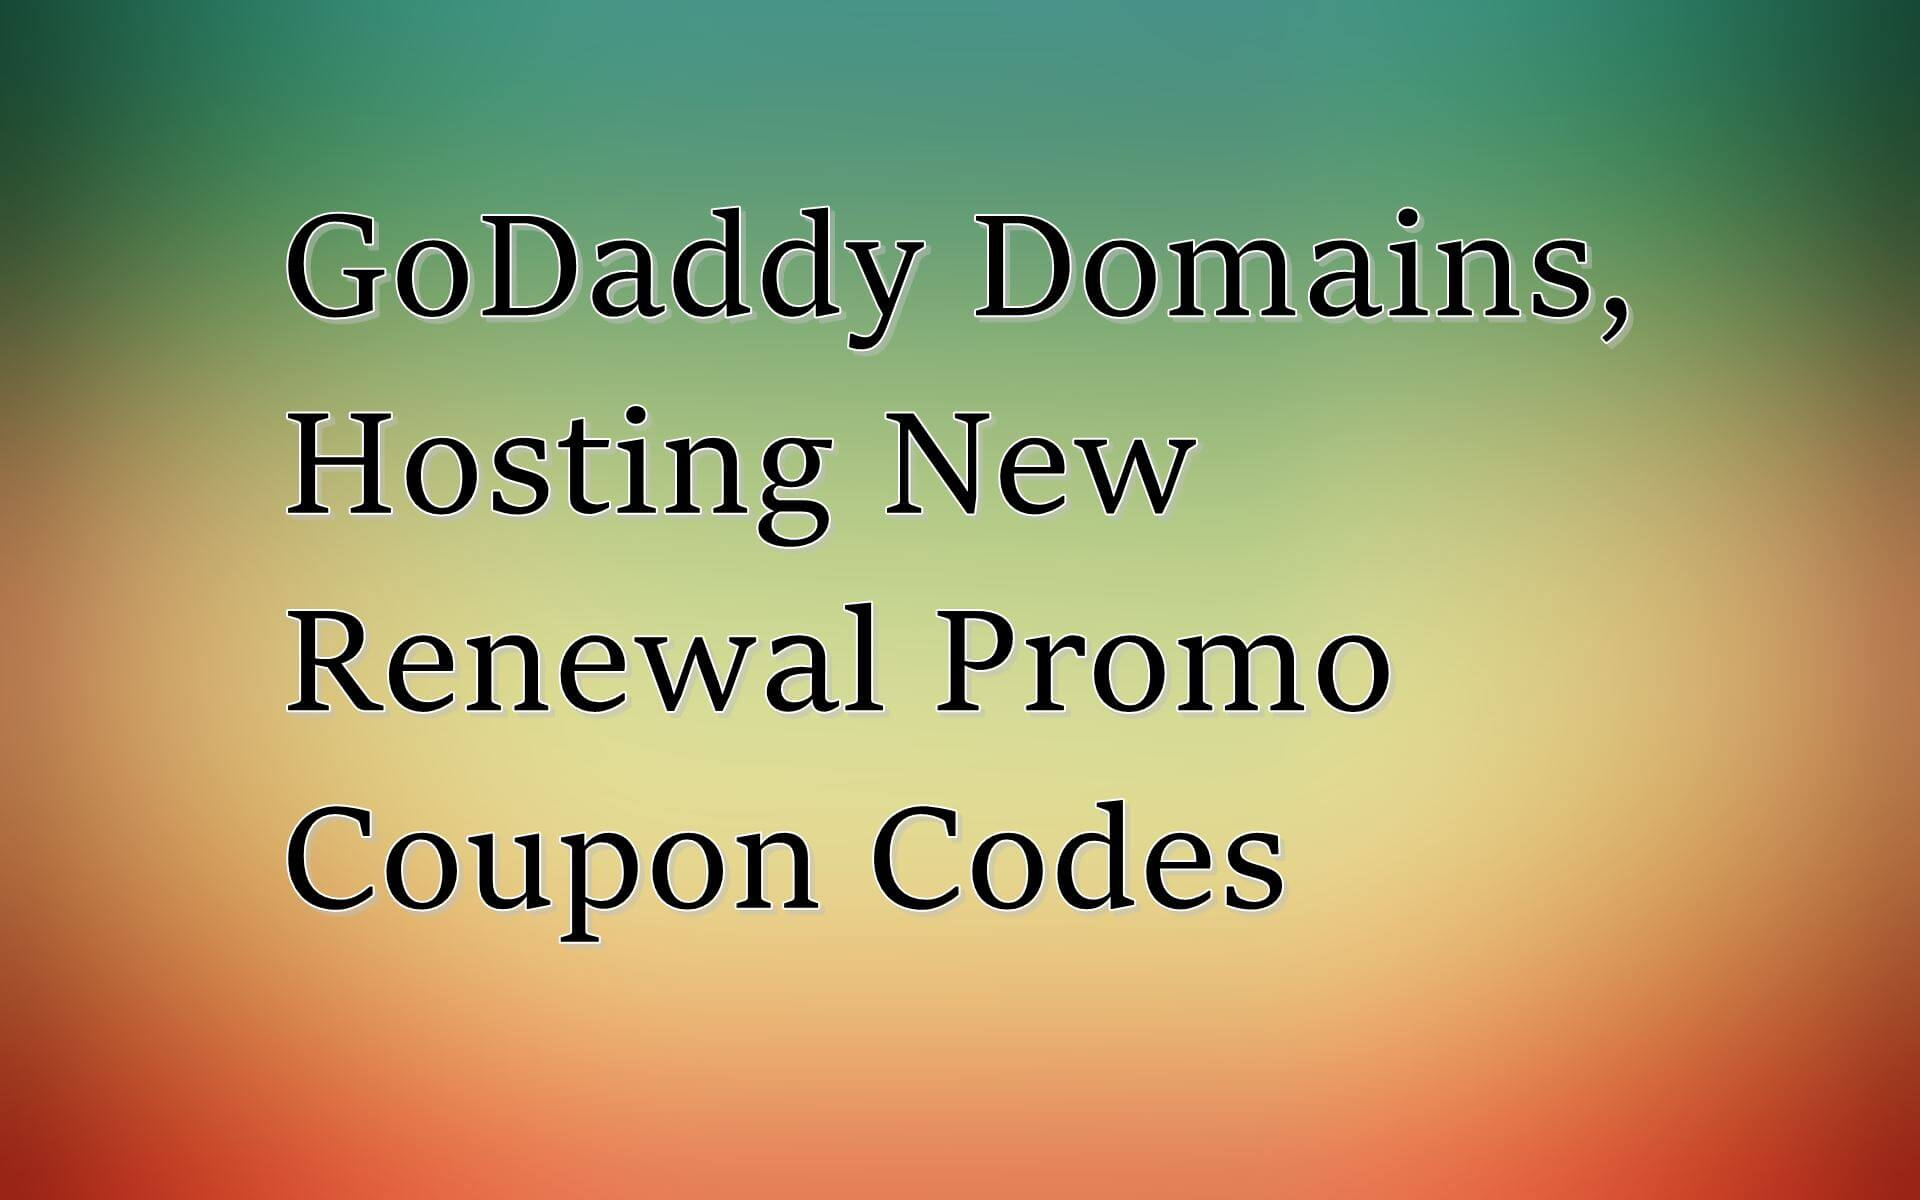 GoDaddy Domains, Hosting New Renewal Promo Coupon Codes